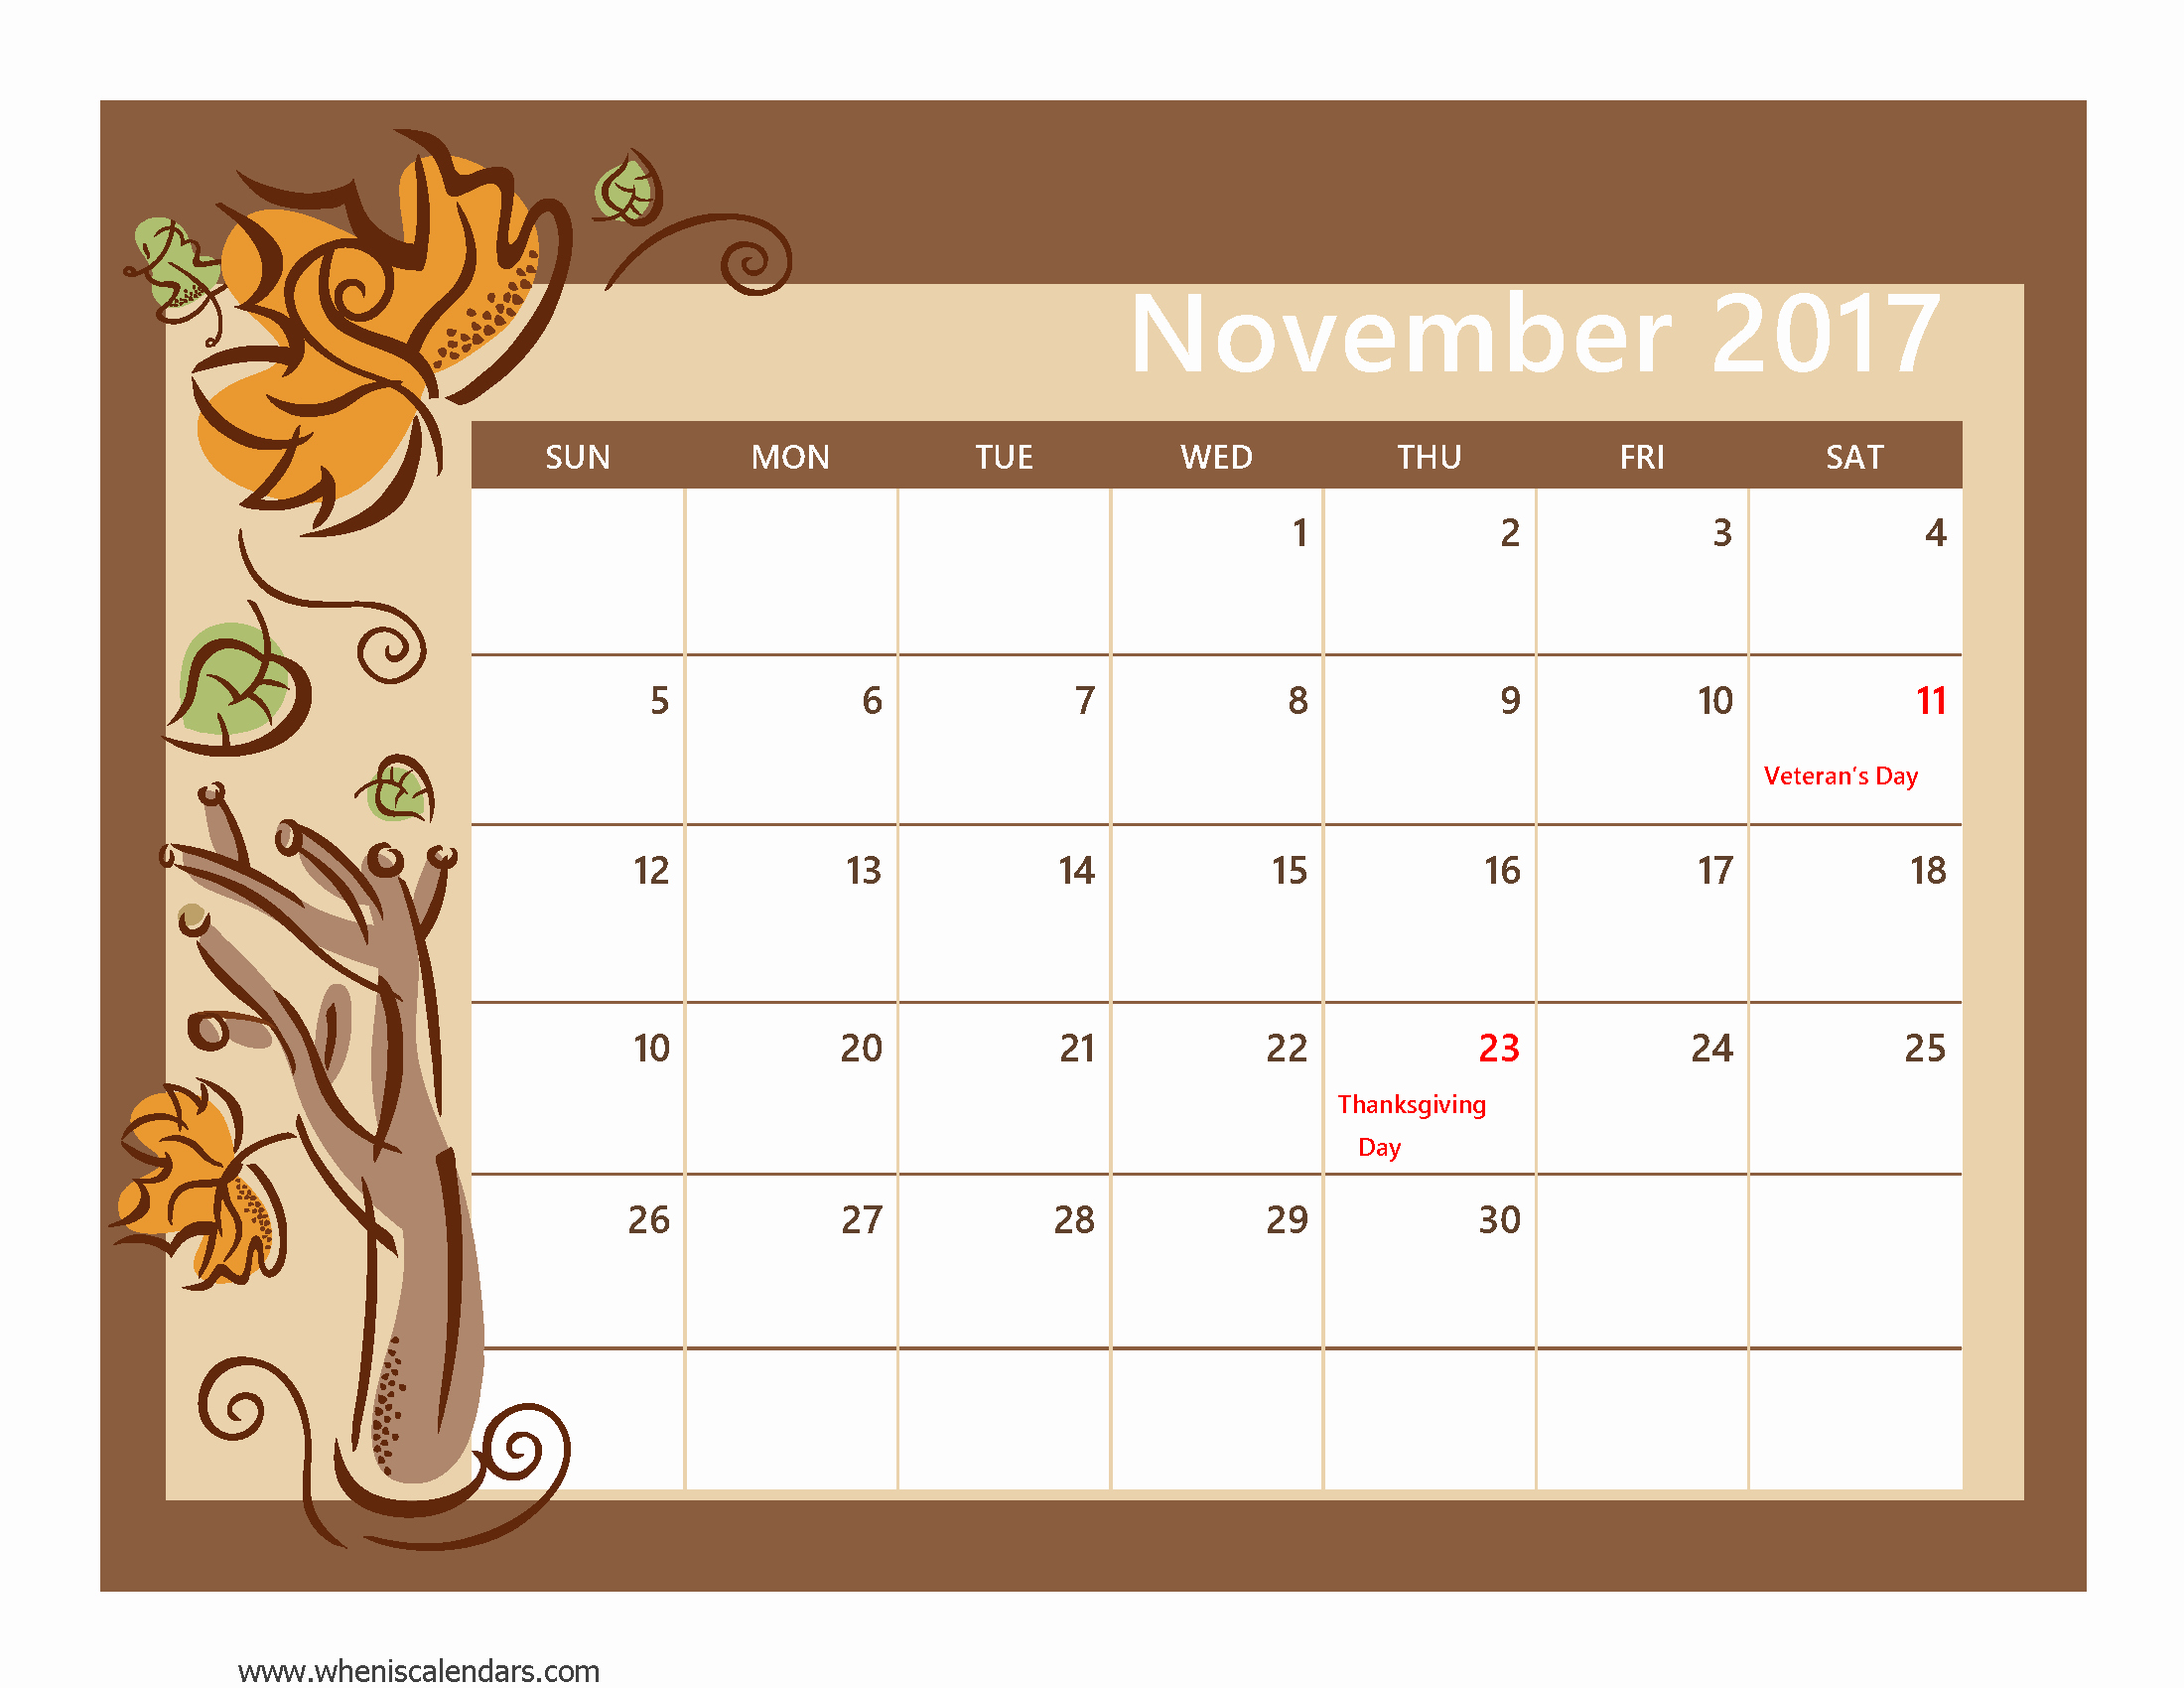 Calendar 2017 Template with Holidays New November 2017 Calendar with Holidays